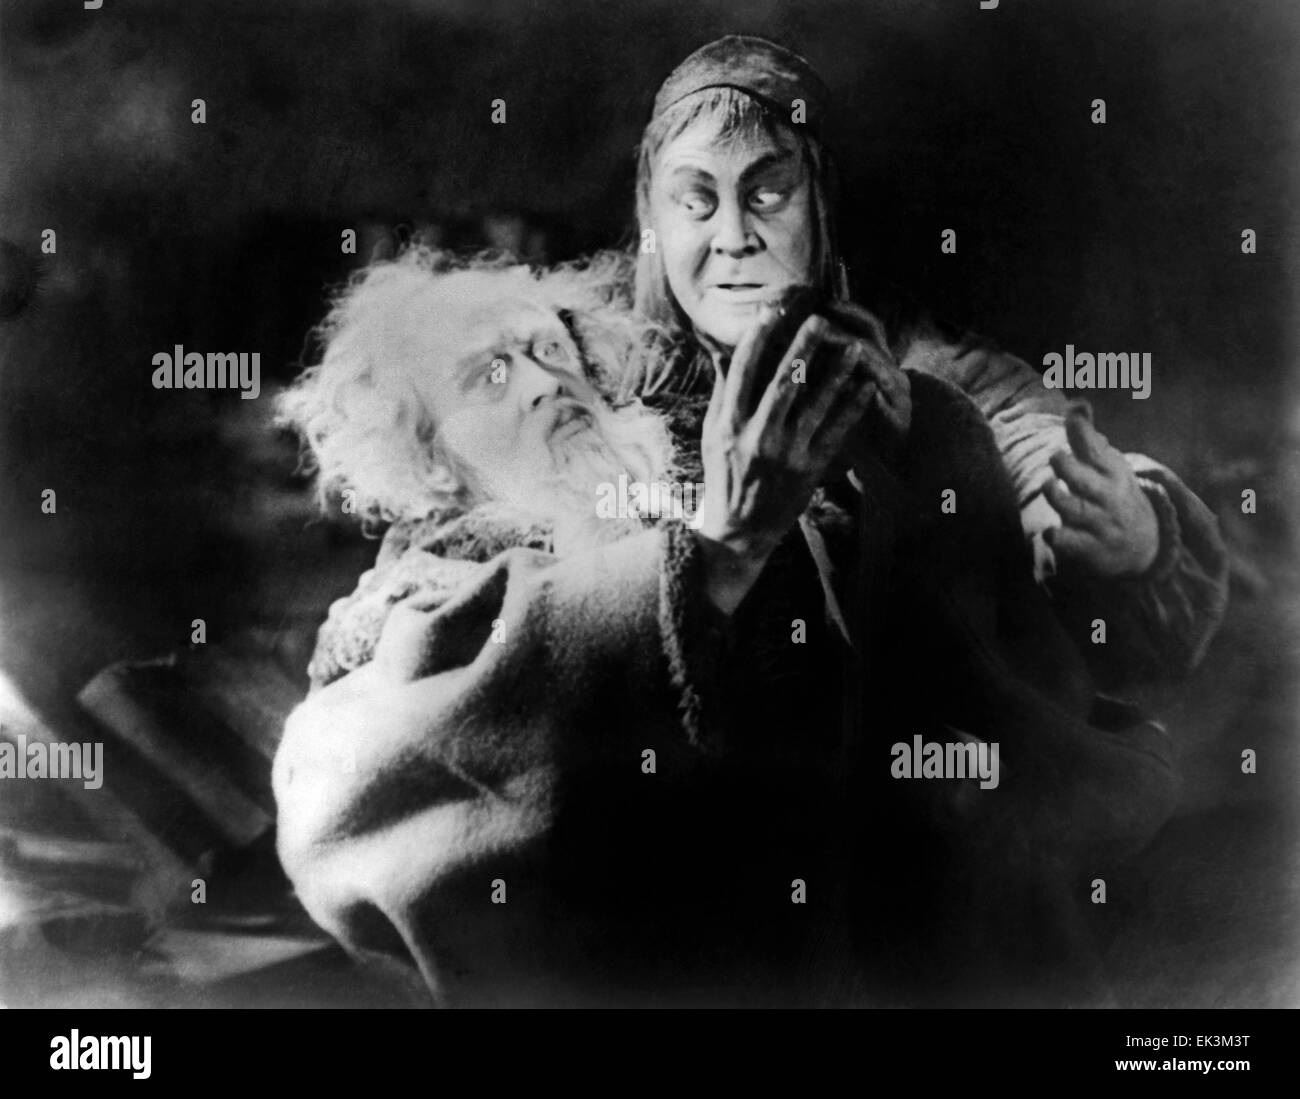 Gosta Ekman, Emil Jannings, on-set of the Silent Film 'Faust', 1926 - Stock Image